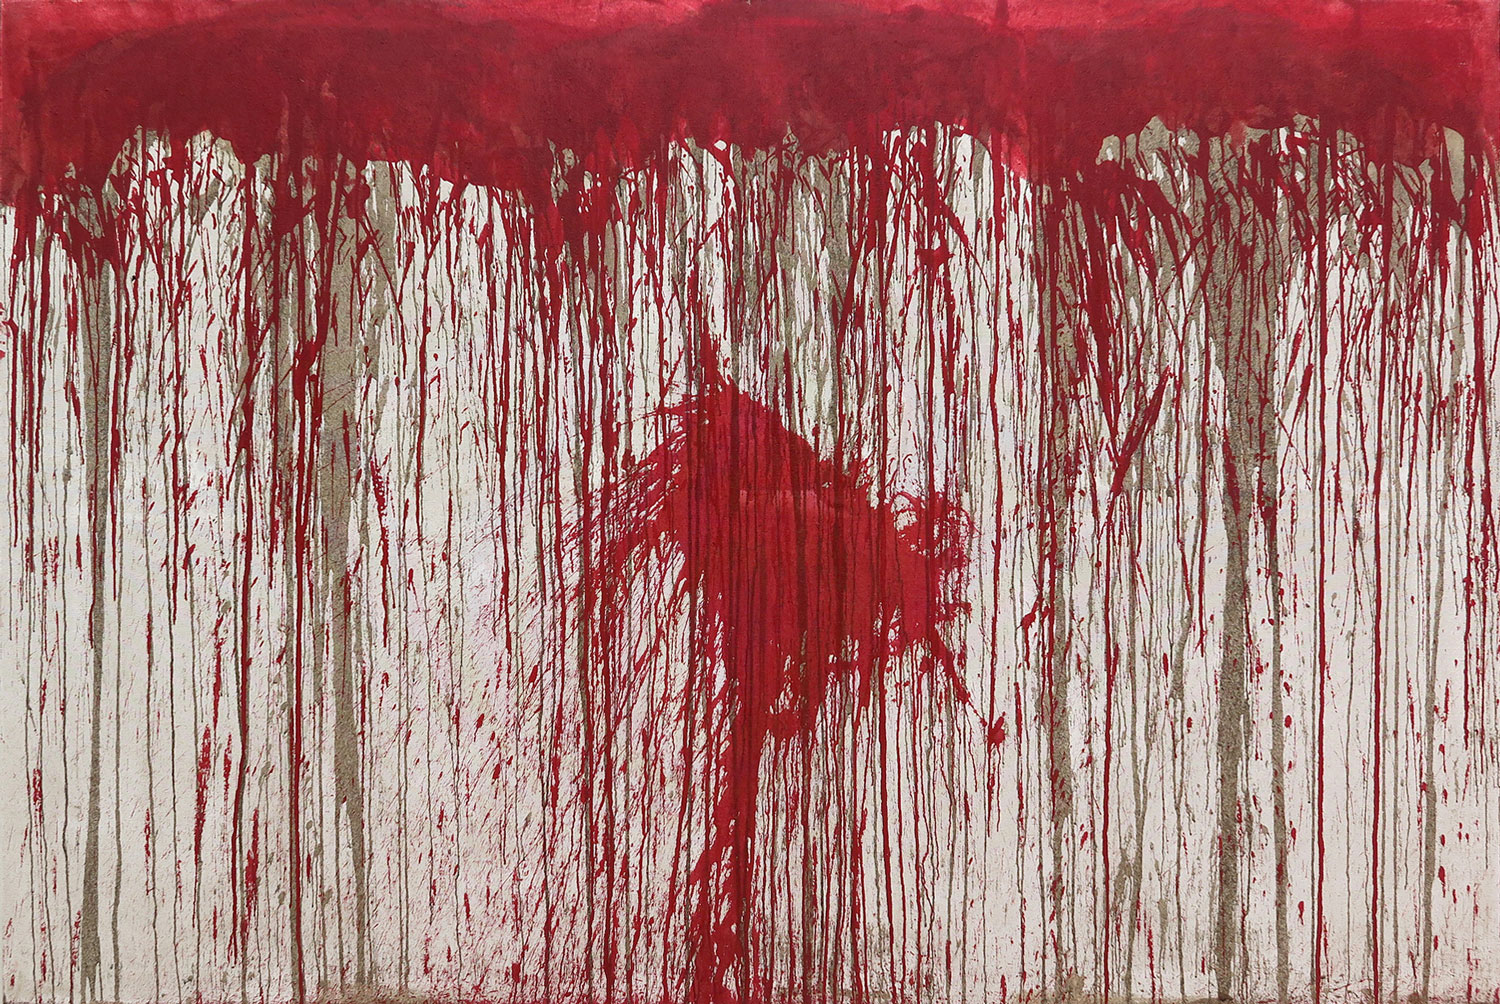 Hermann Nitsch 2010 Blood and Acrylic on Canvas 78 3/4 x 118 1/4 in 200 x 300 cm 2015 Marc Straus Gallery